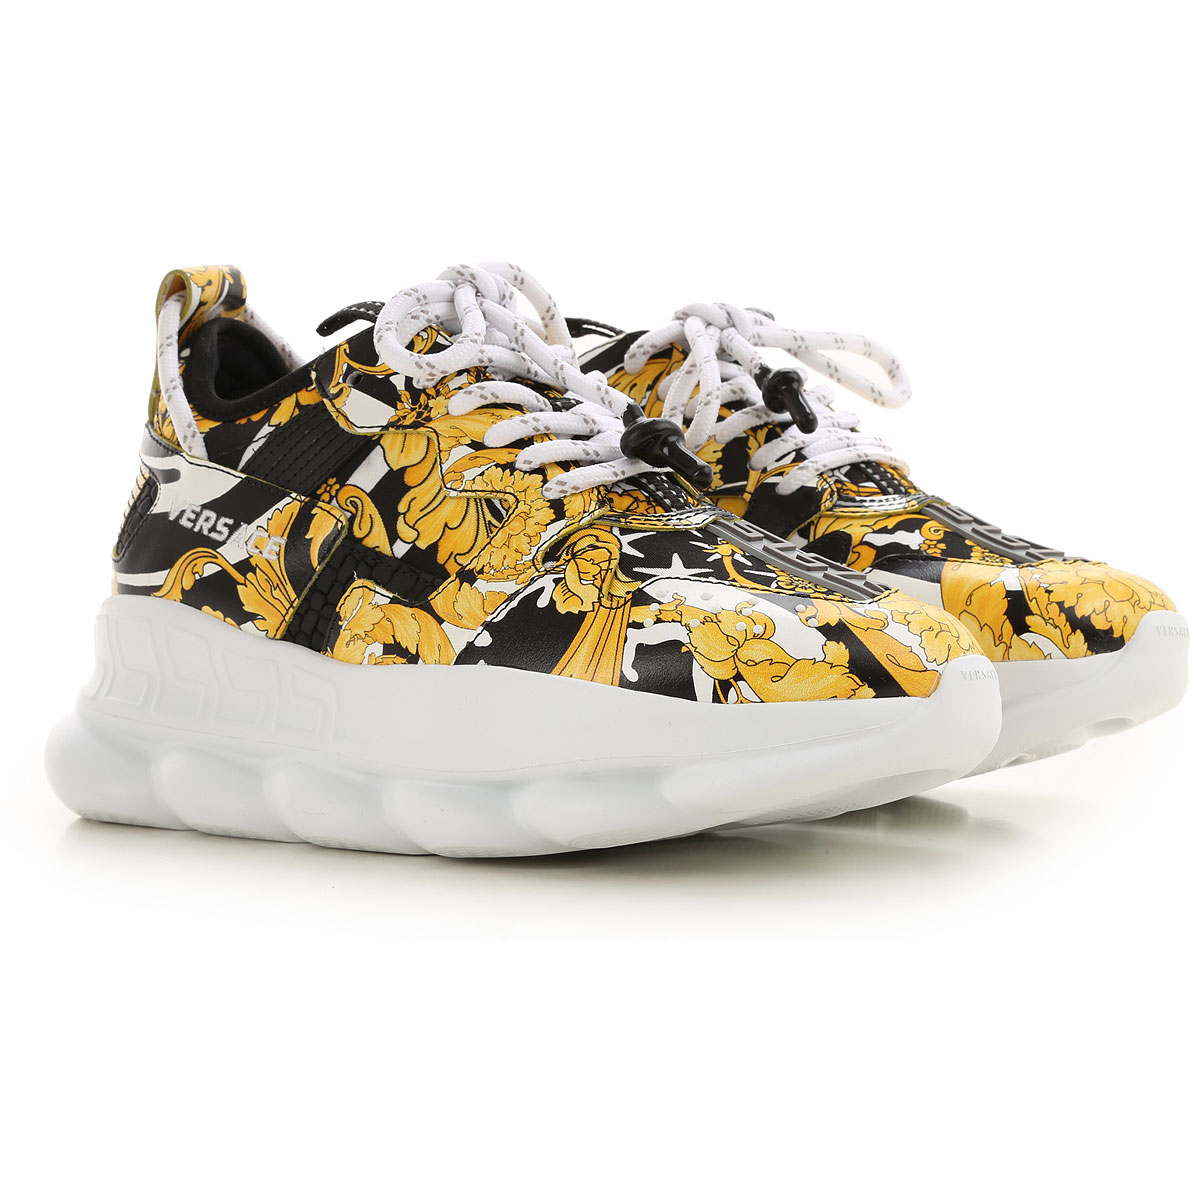 Gianni Versace Sneakers for Women On Sale, Yellow, Leather, 2019, 6 6.5 7 8 8.5 9